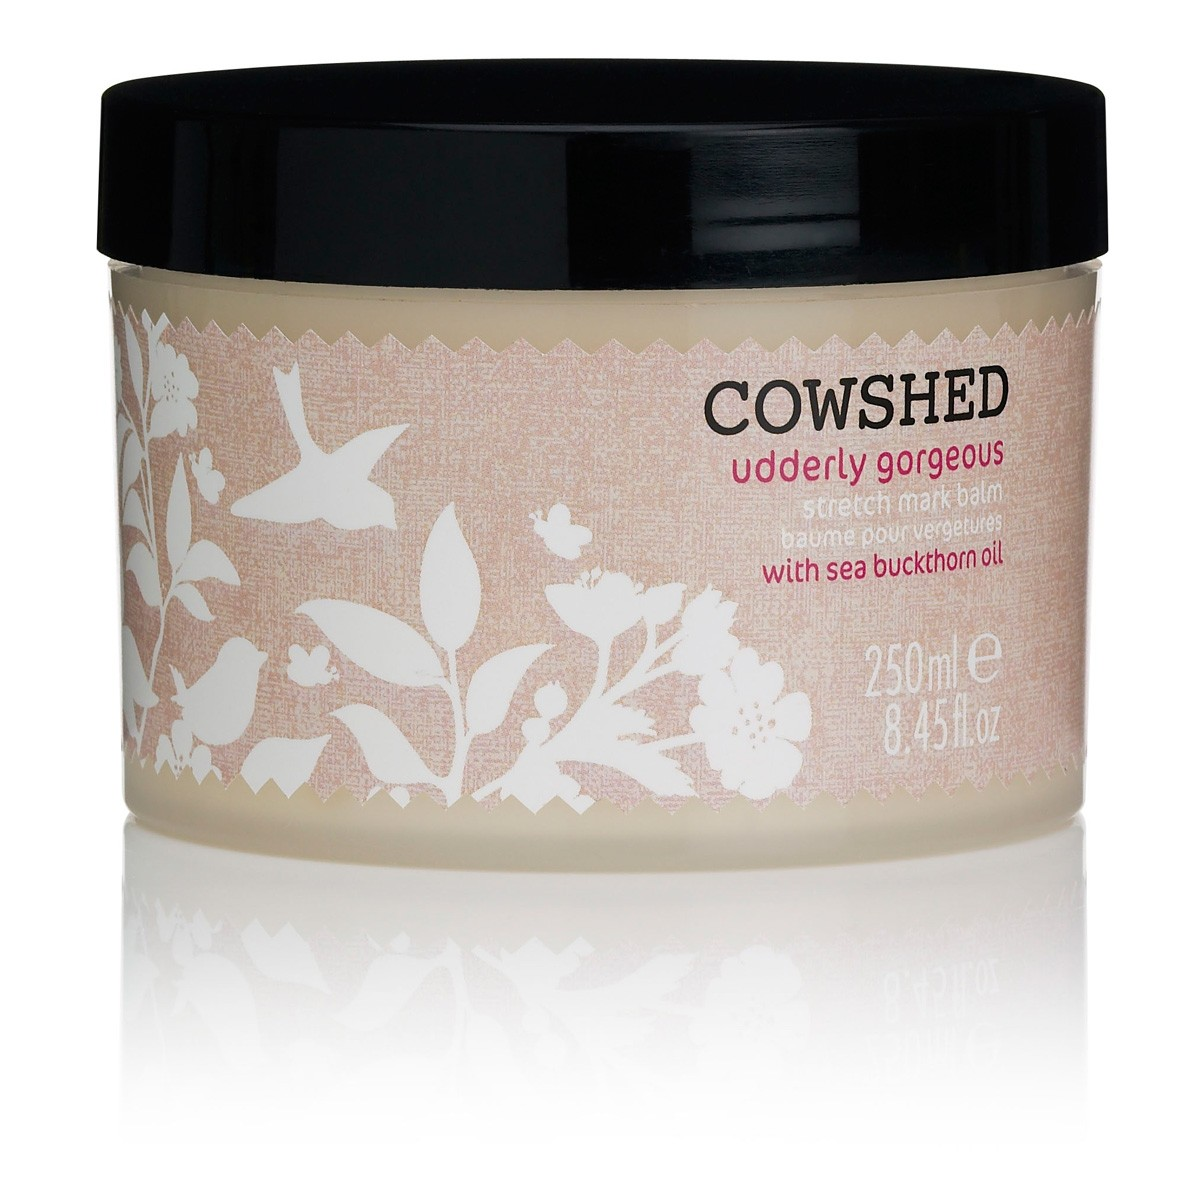 Cowshed Udderly Gorgeous Stretch Mark Balm